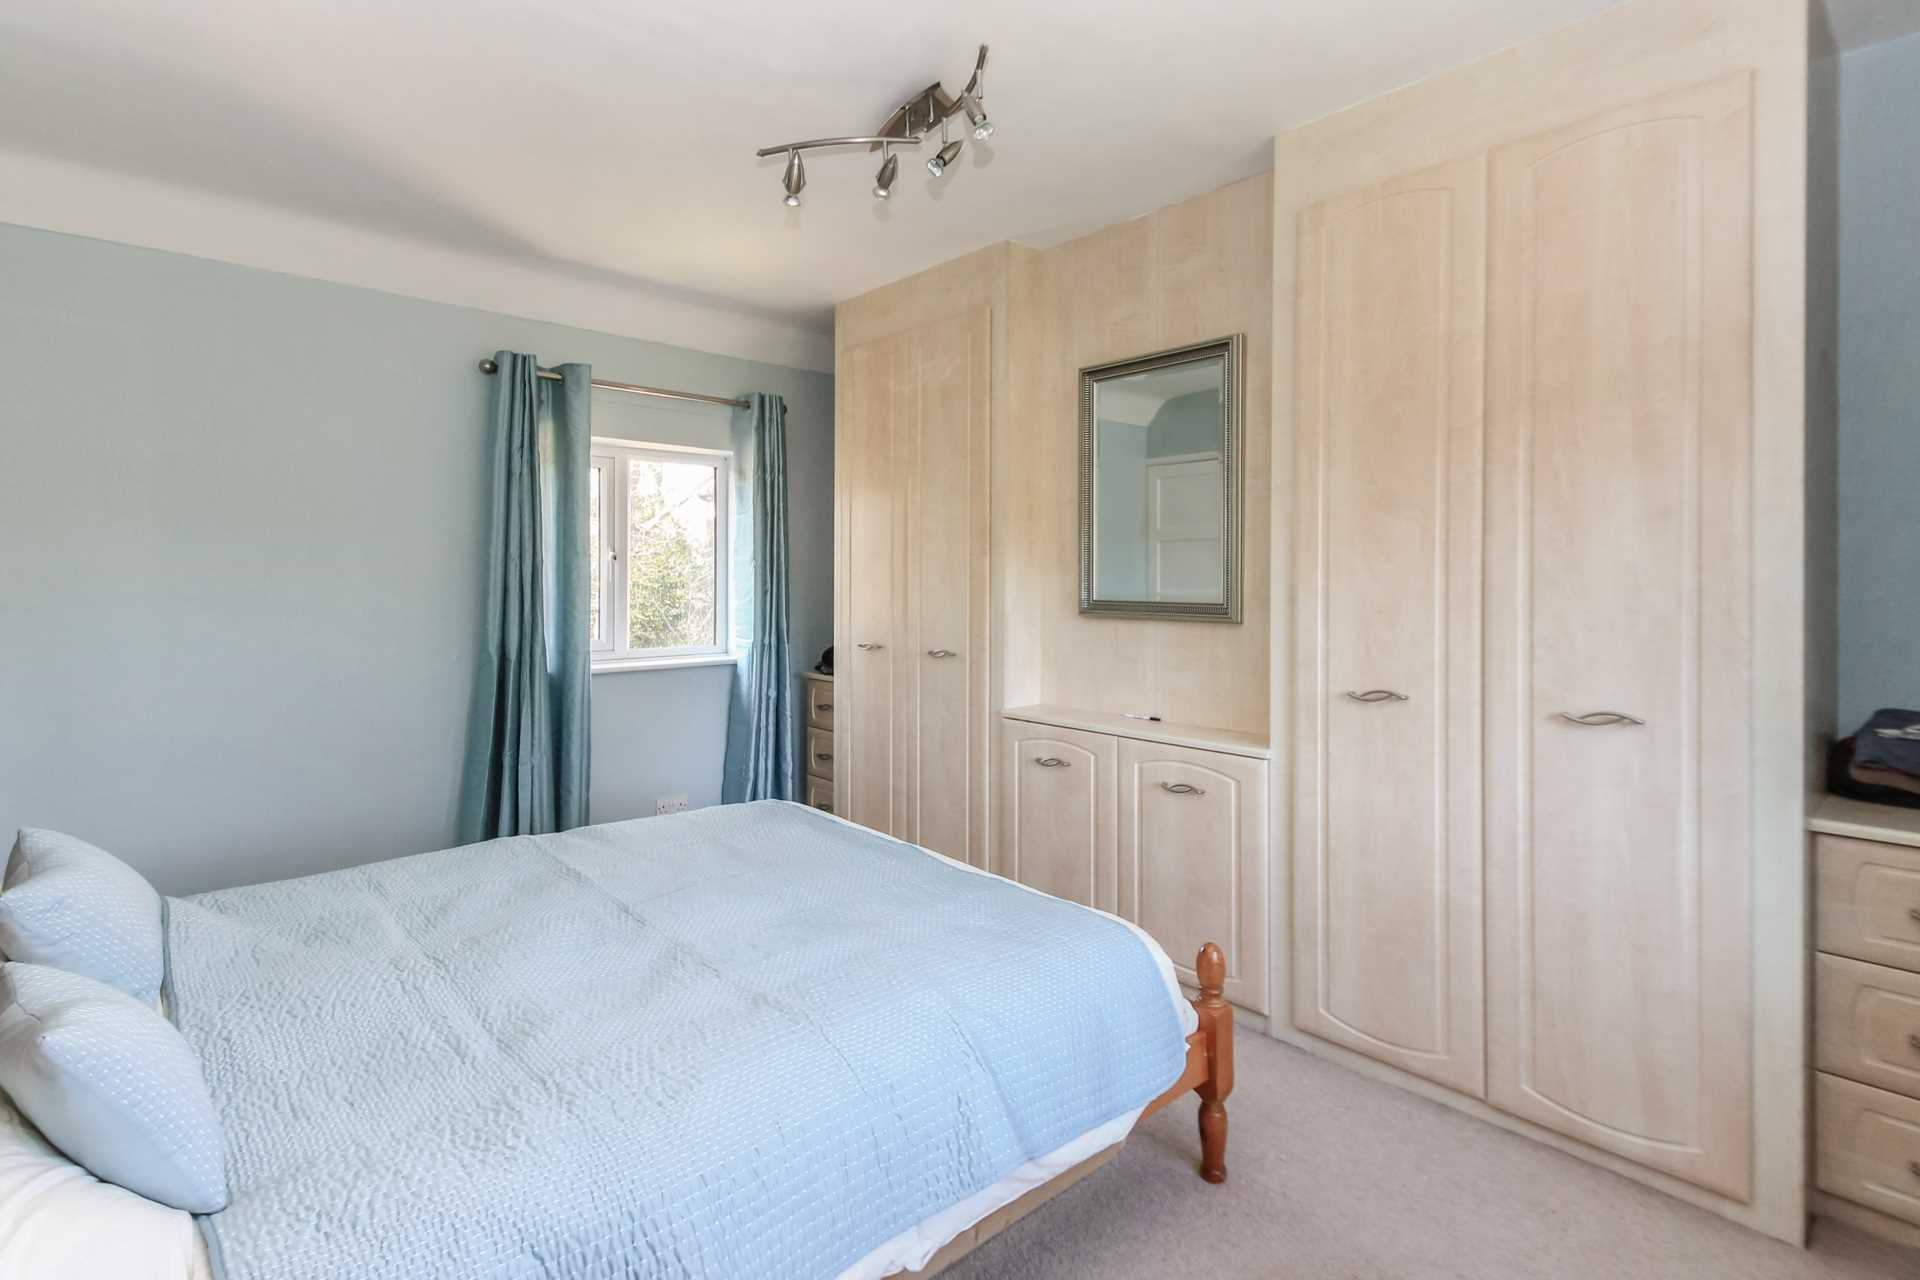 Property For Sale Chiltern Cottages Buckland Common Cesare Co Id 10006045